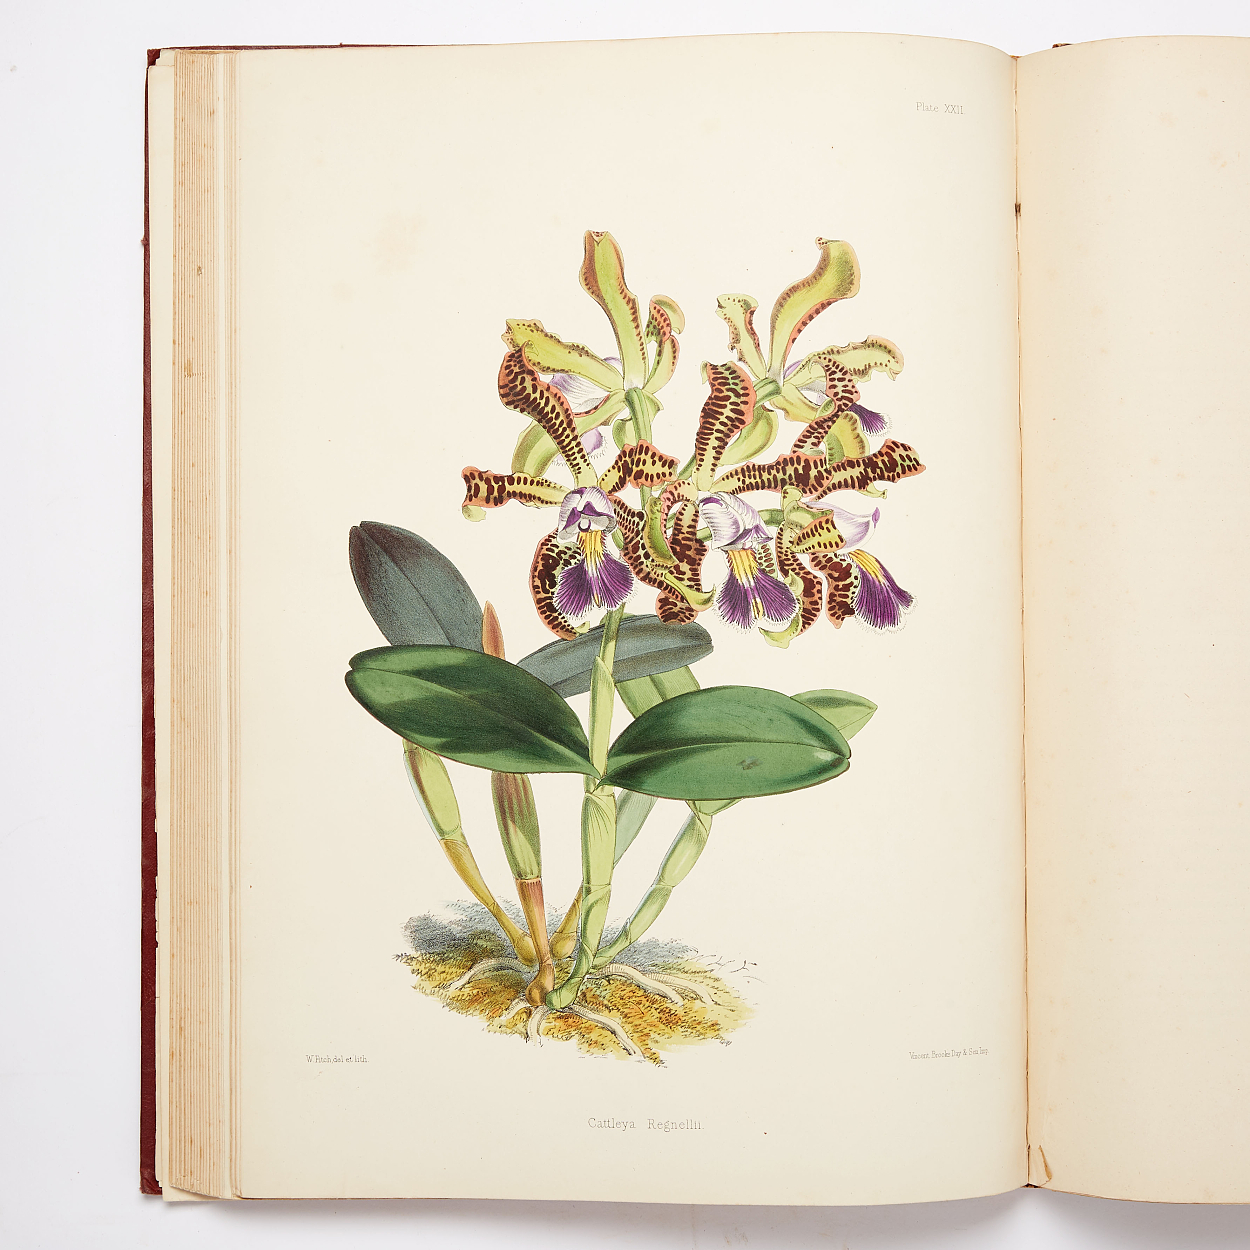 Warner's fine work on orchids 1862-65